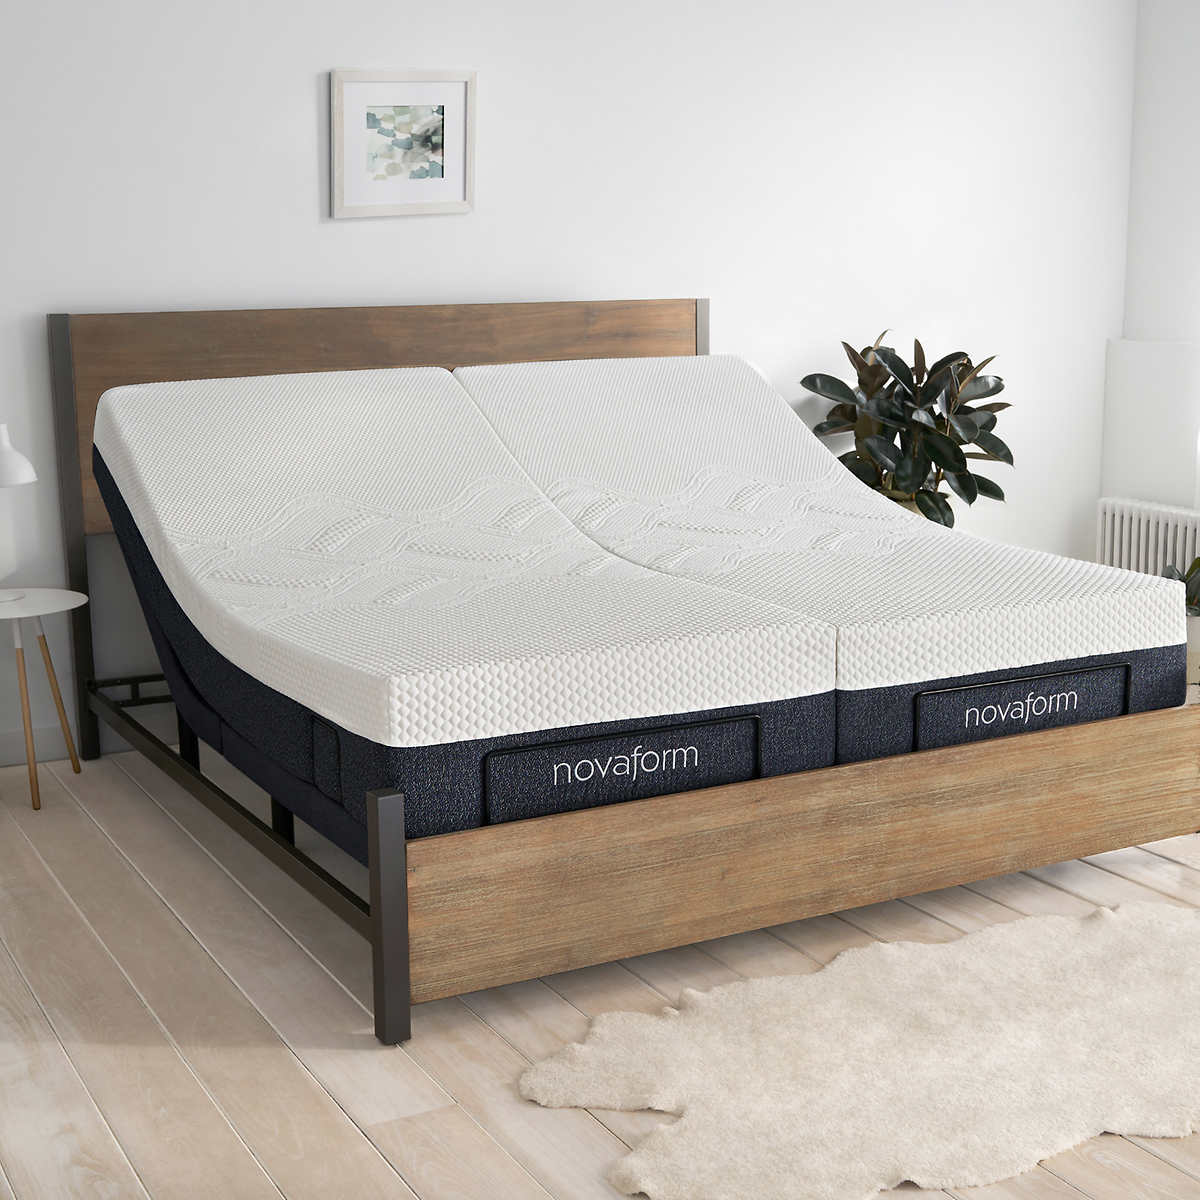 10 days or less adjustable beds | costco